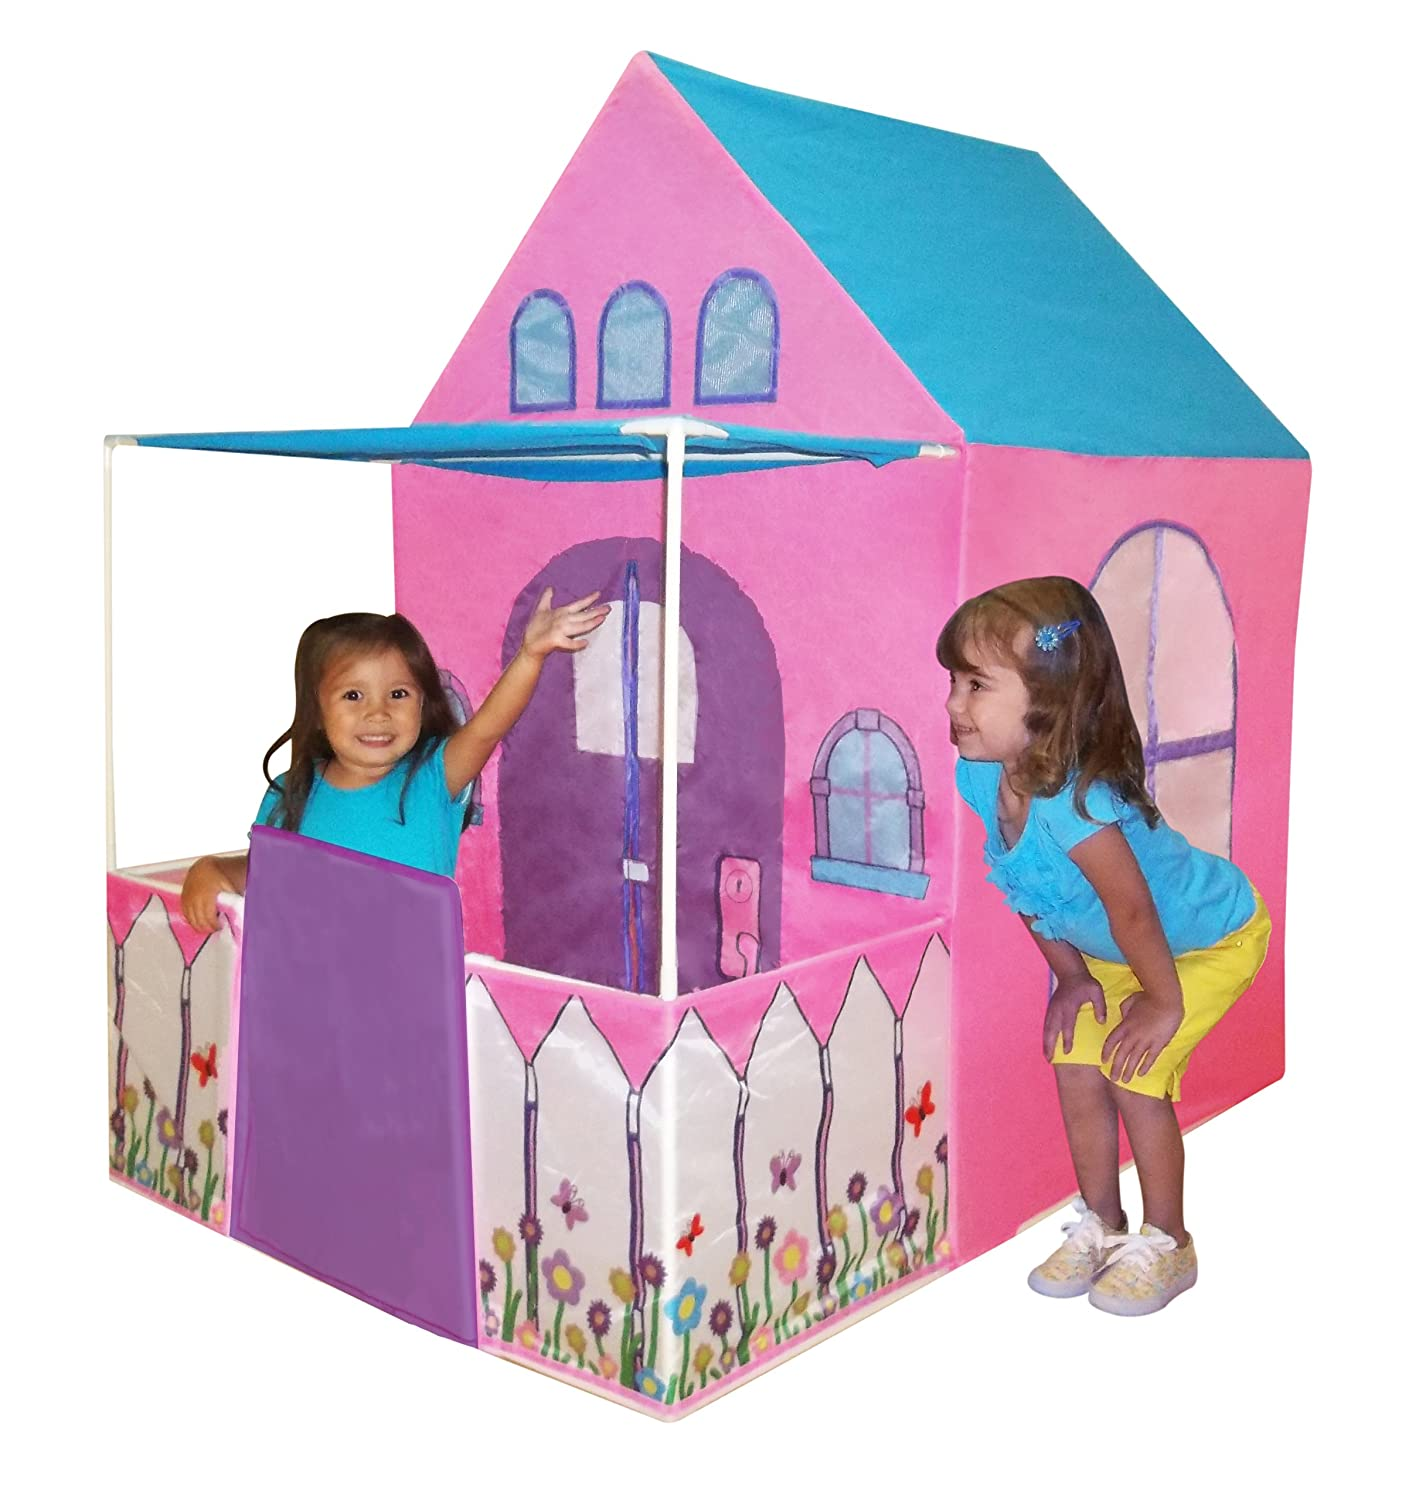 Amazon.com Playhouse Victorian Princess Castle Play tent with fenced patio by Kids Adventure Toys u0026 Games  sc 1 st  Amazon.com & Amazon.com: Playhouse Victorian Princess Castle Play tent with ...